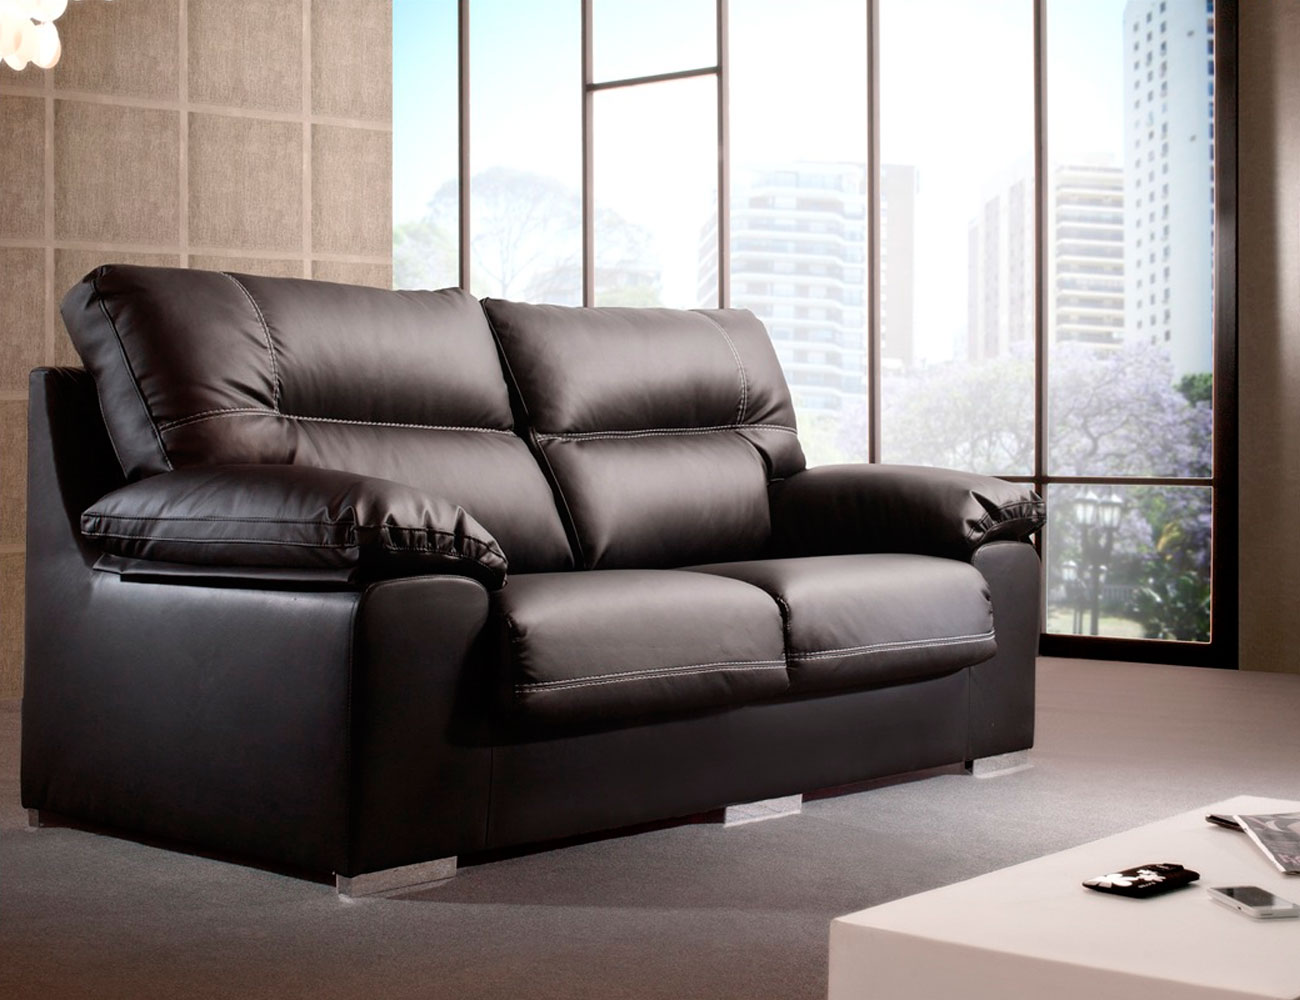 Sofa 3 plazas polipiel negro